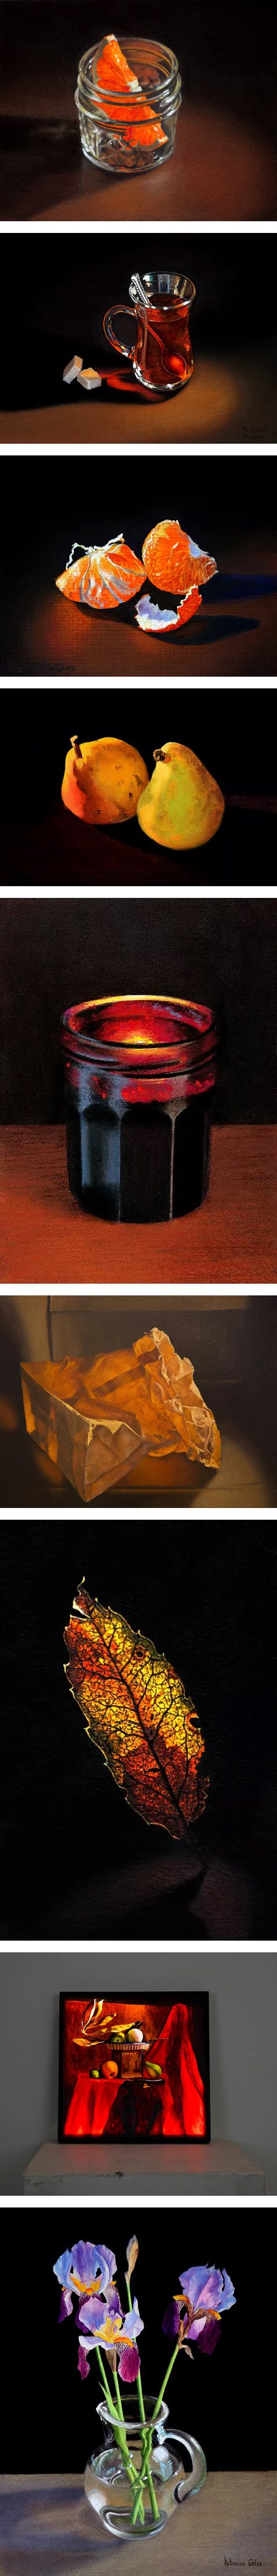 Rebecca GIles, still life paintings